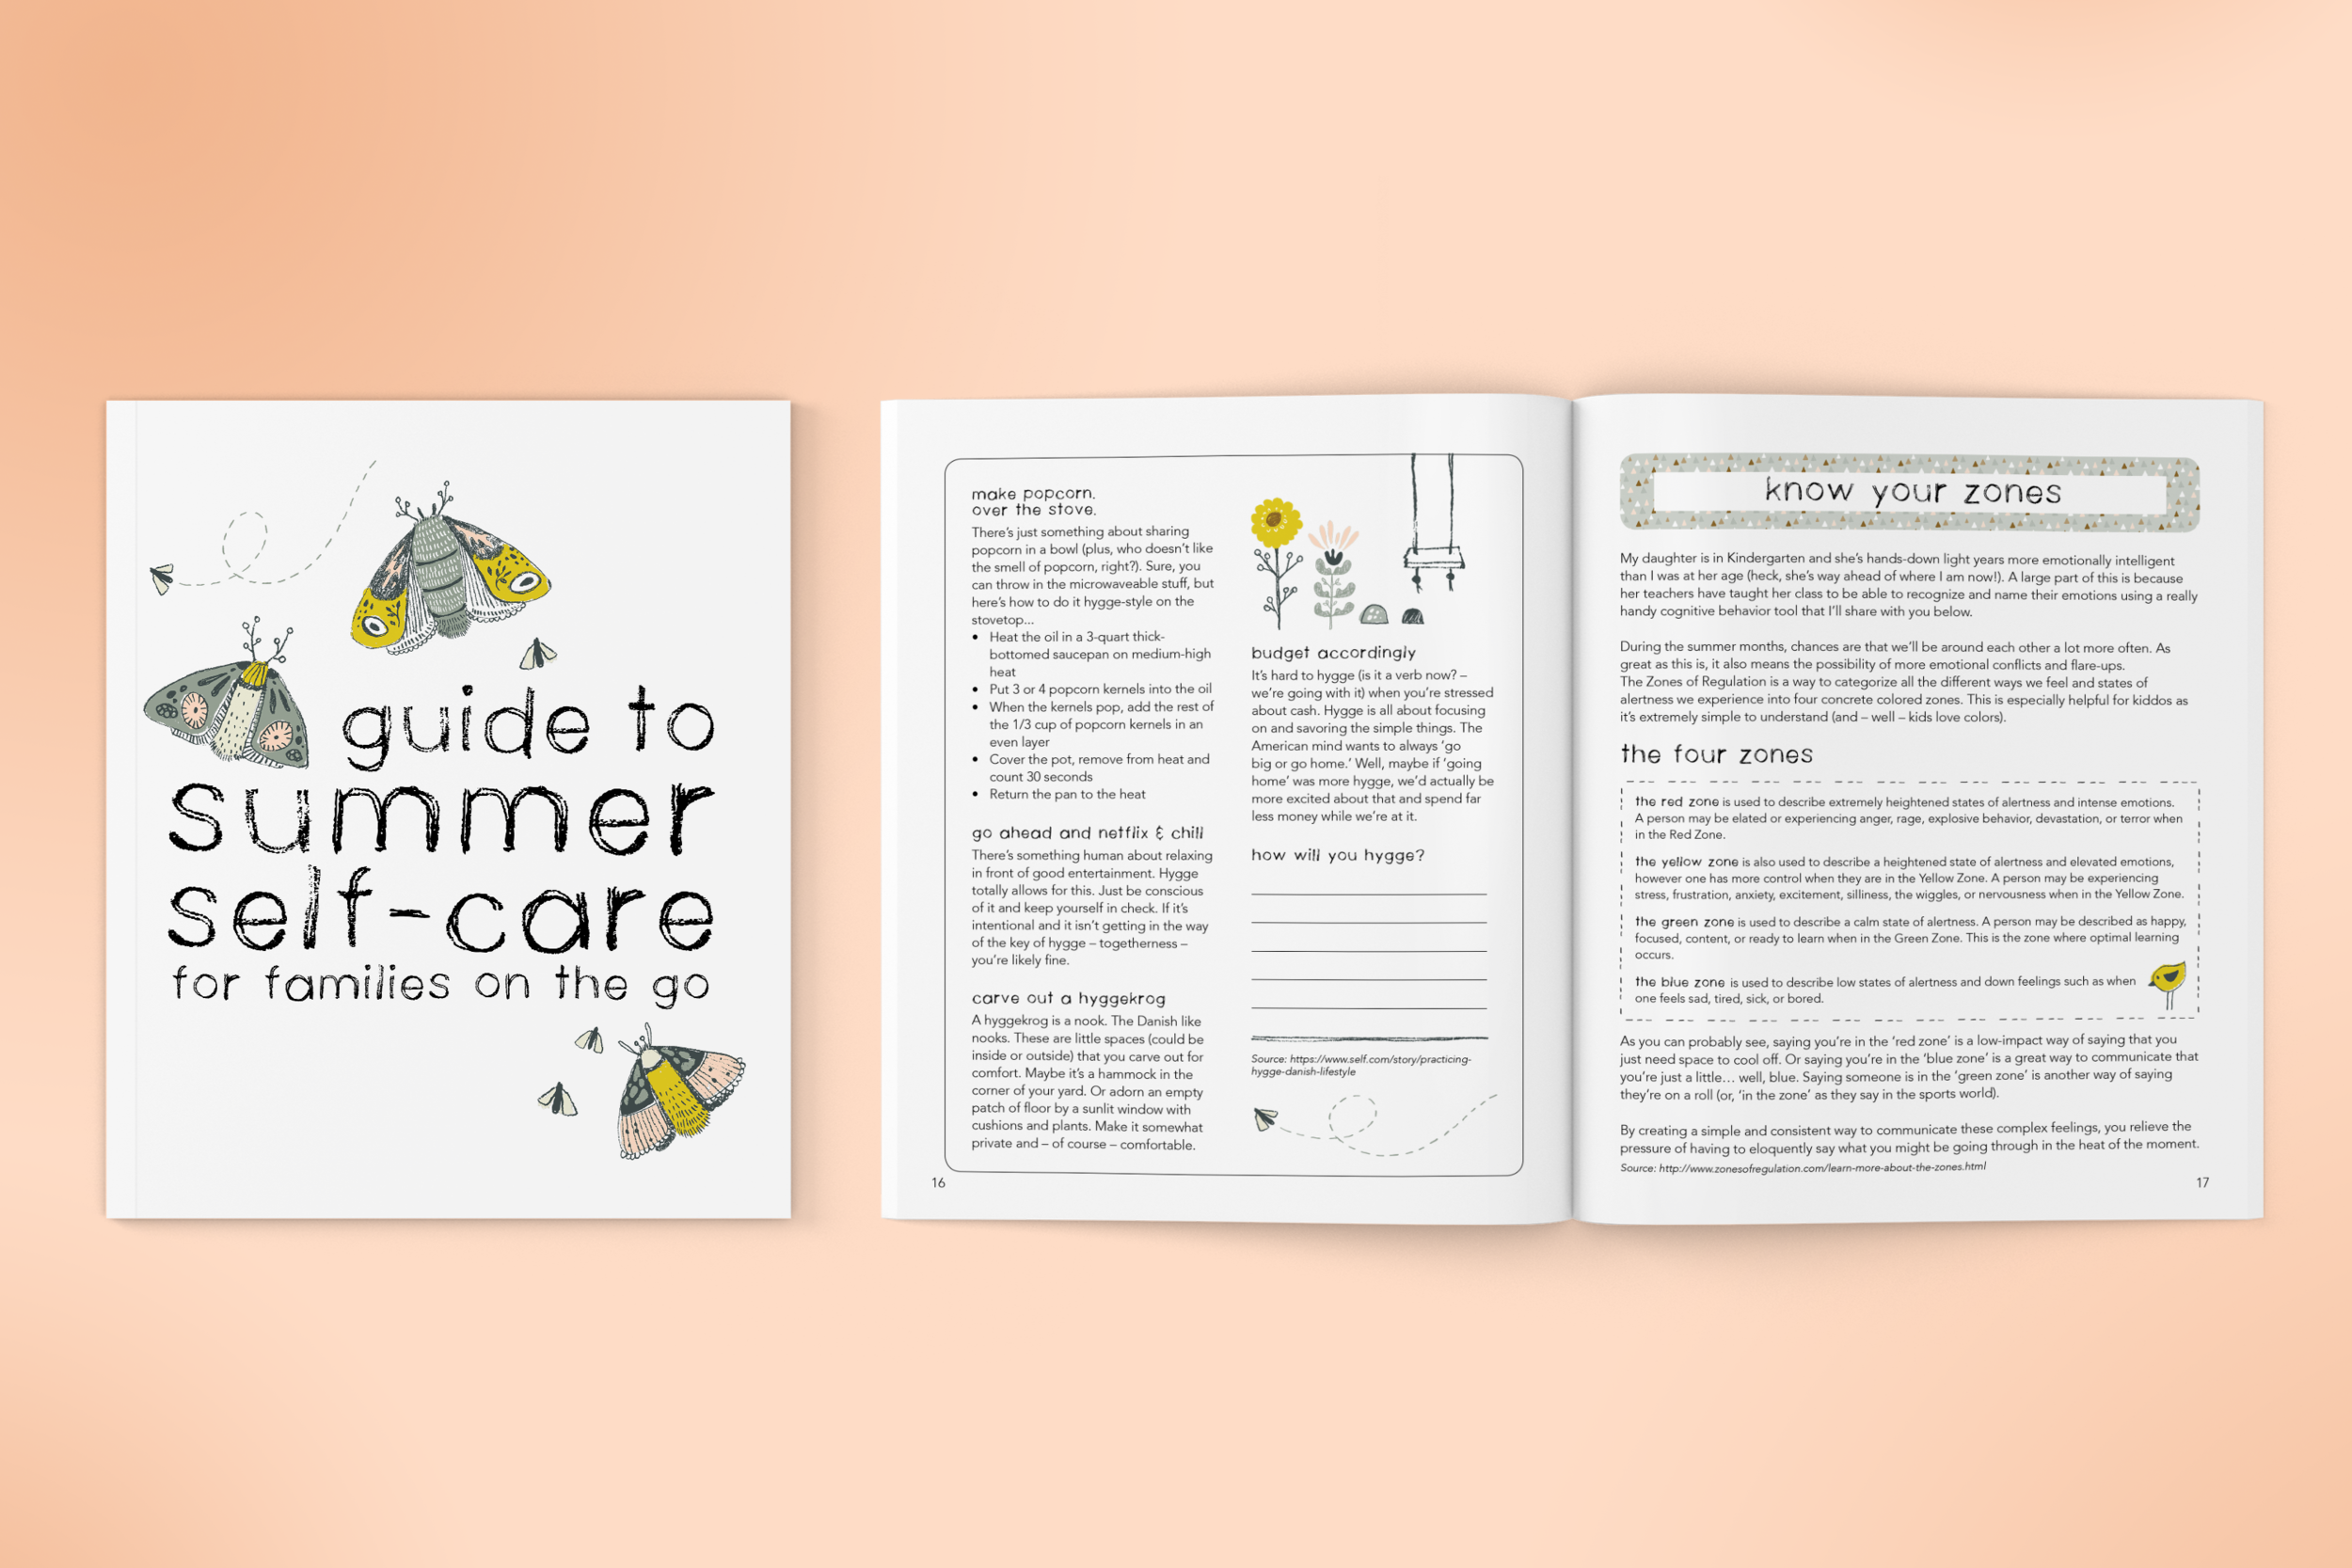 Guide to Summer Self-Care (Congregational Use: 500+ Members)